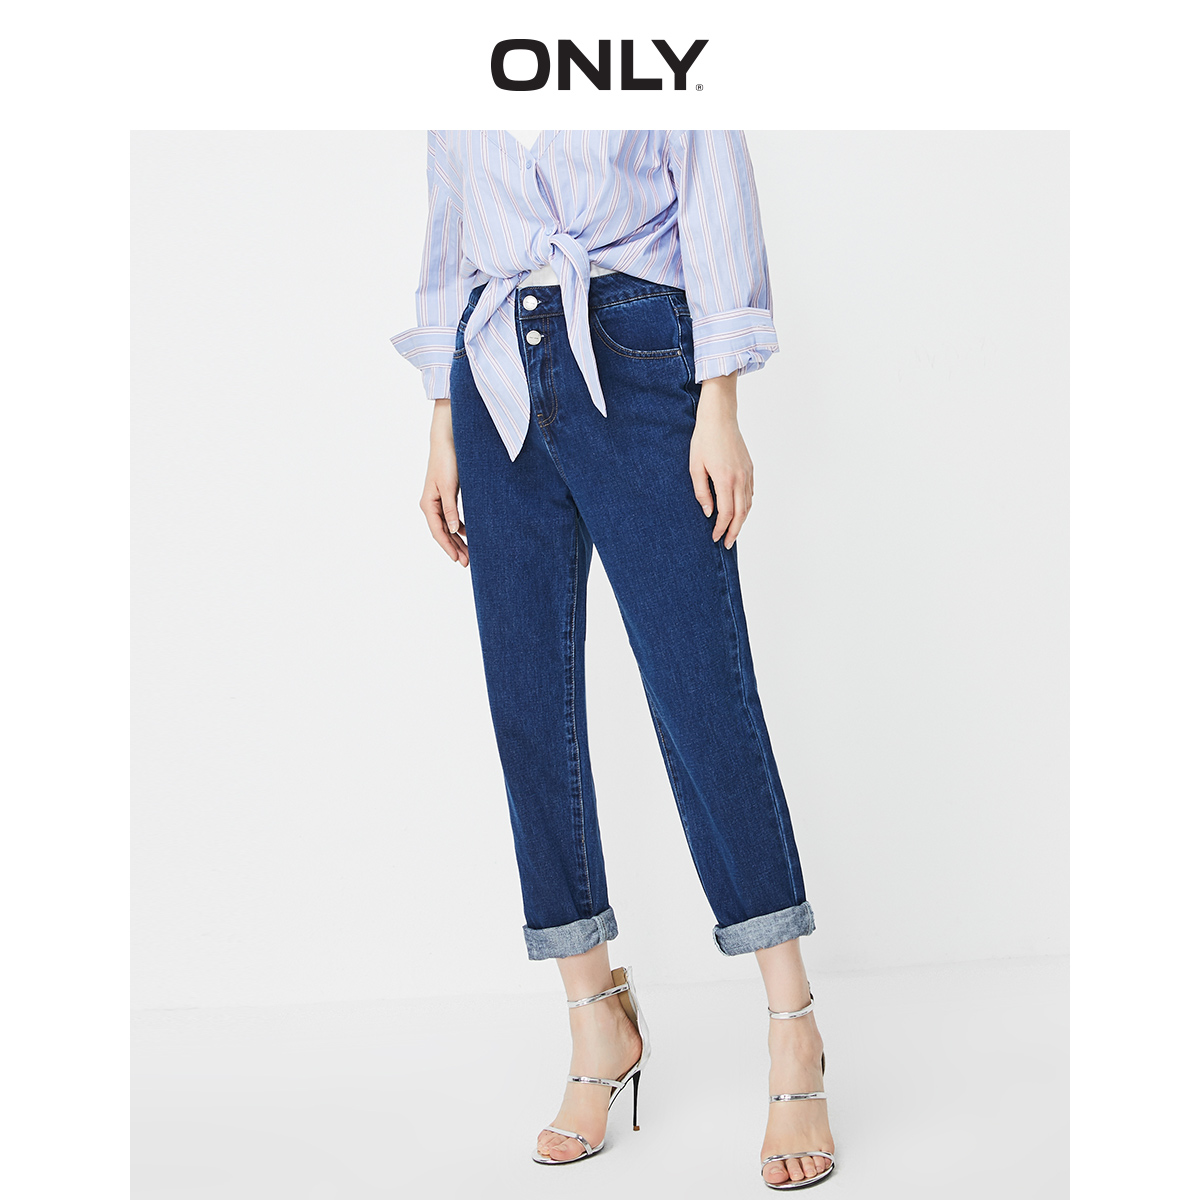 ONLY Women's Loose Straight Fit High-rise Crop Jeans | 119149521